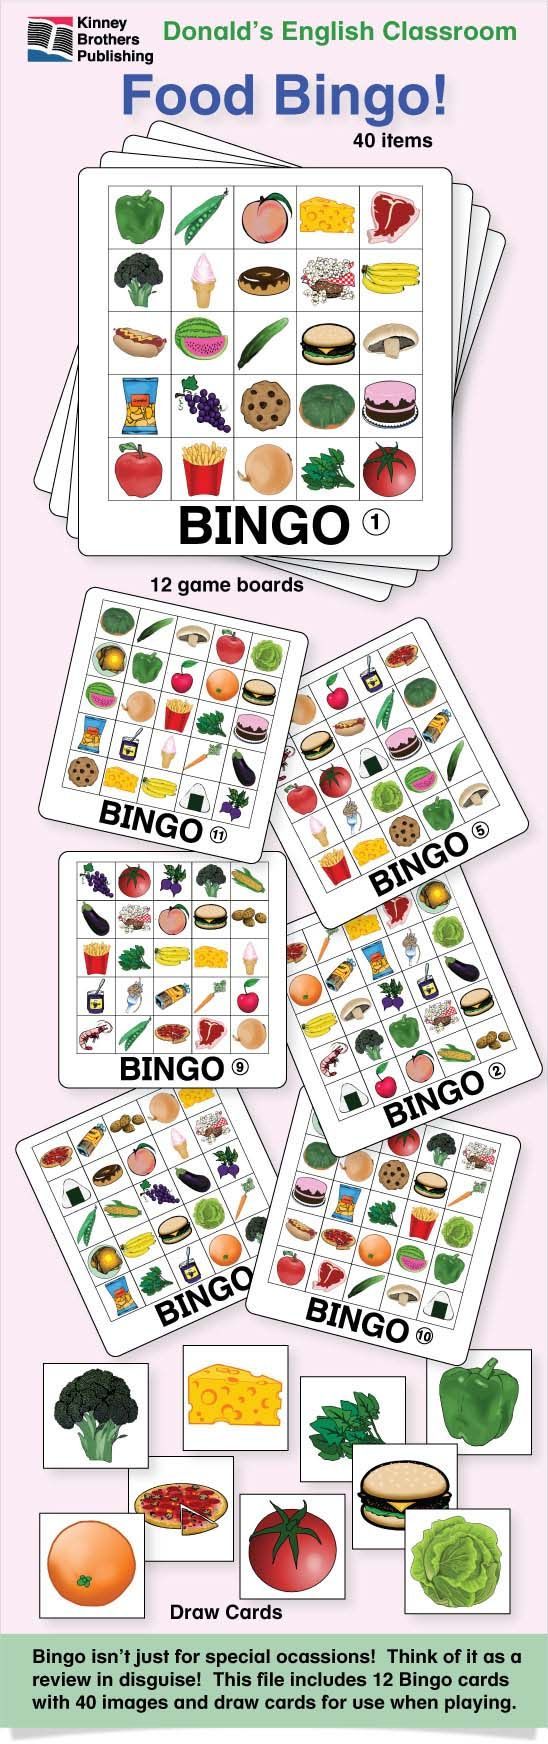 Bingo isn't just for special occasions! Think of Bingo as a lesson review disguised as a game! This pdf file includes 12 Food Bingo game boards and 40 images for use as draw cards.